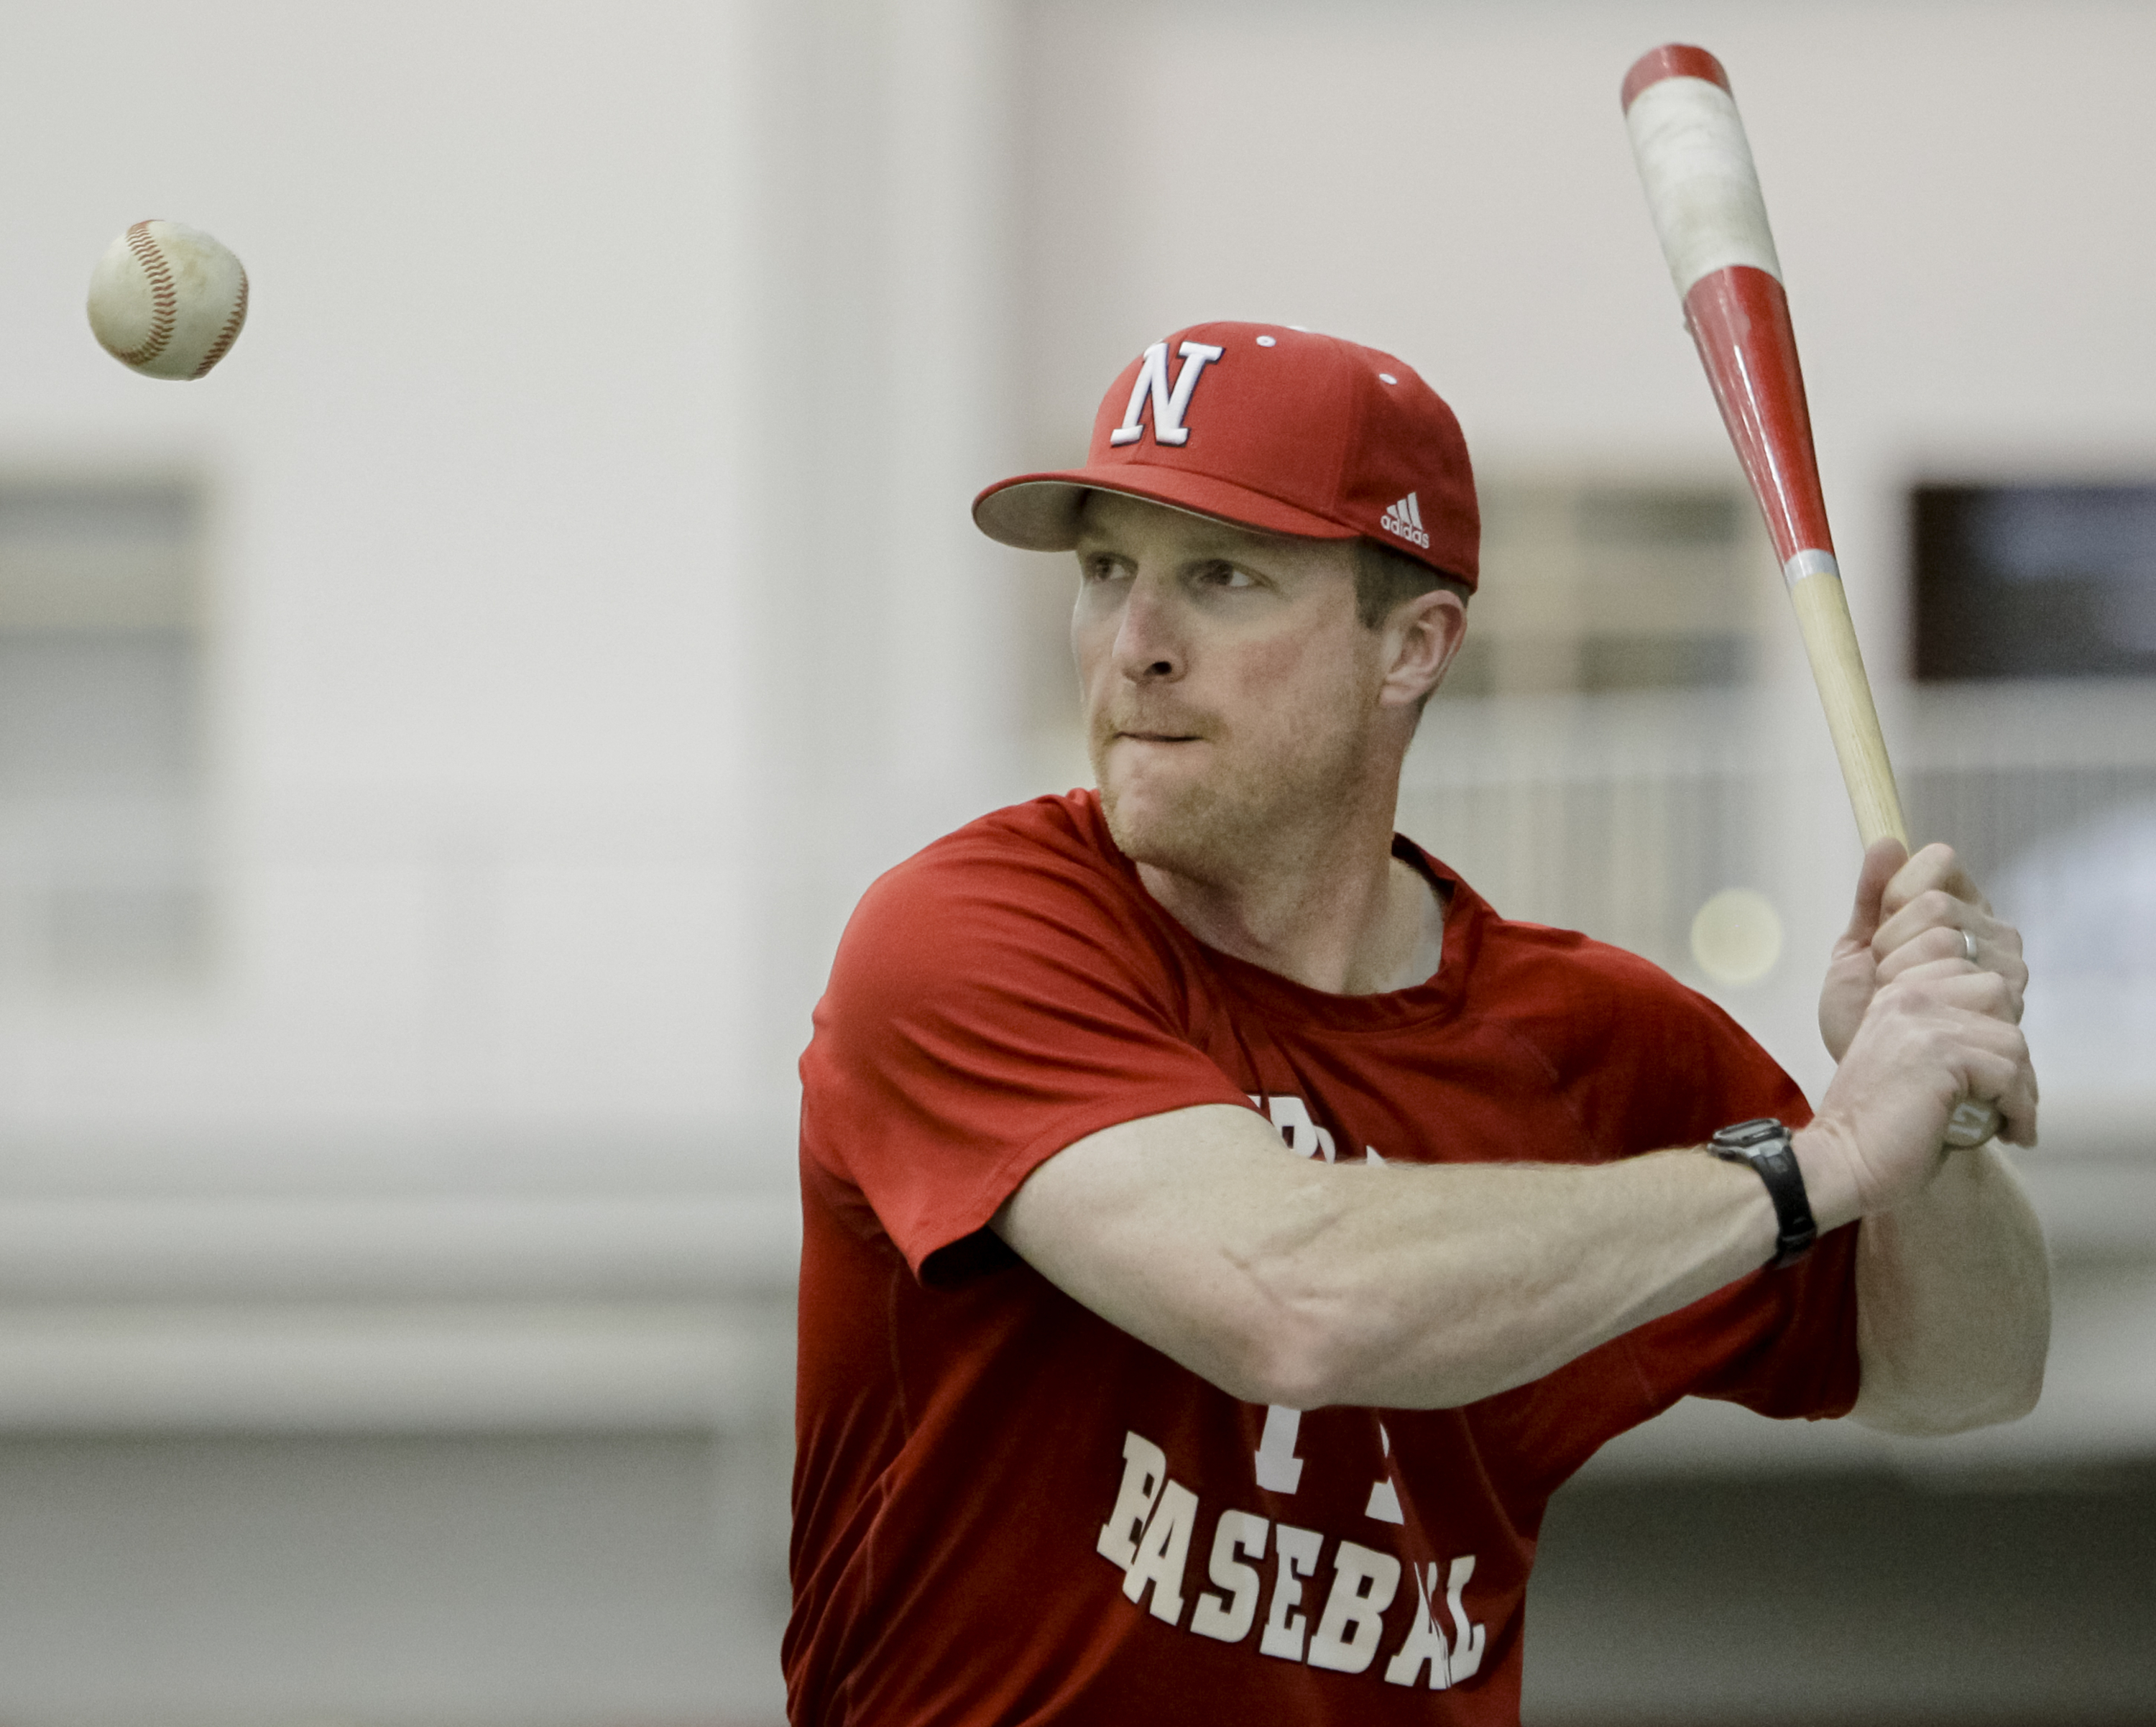 FILE - In this Feb. 28, 2012, file photo, Nebraska coach Darin Erstad hits balls during NCAA college baseball practice in Lincoln, Neb. A few days after Erstad interviewed for the Los Angeles Dodgers manager's job, he was working with a small group of his